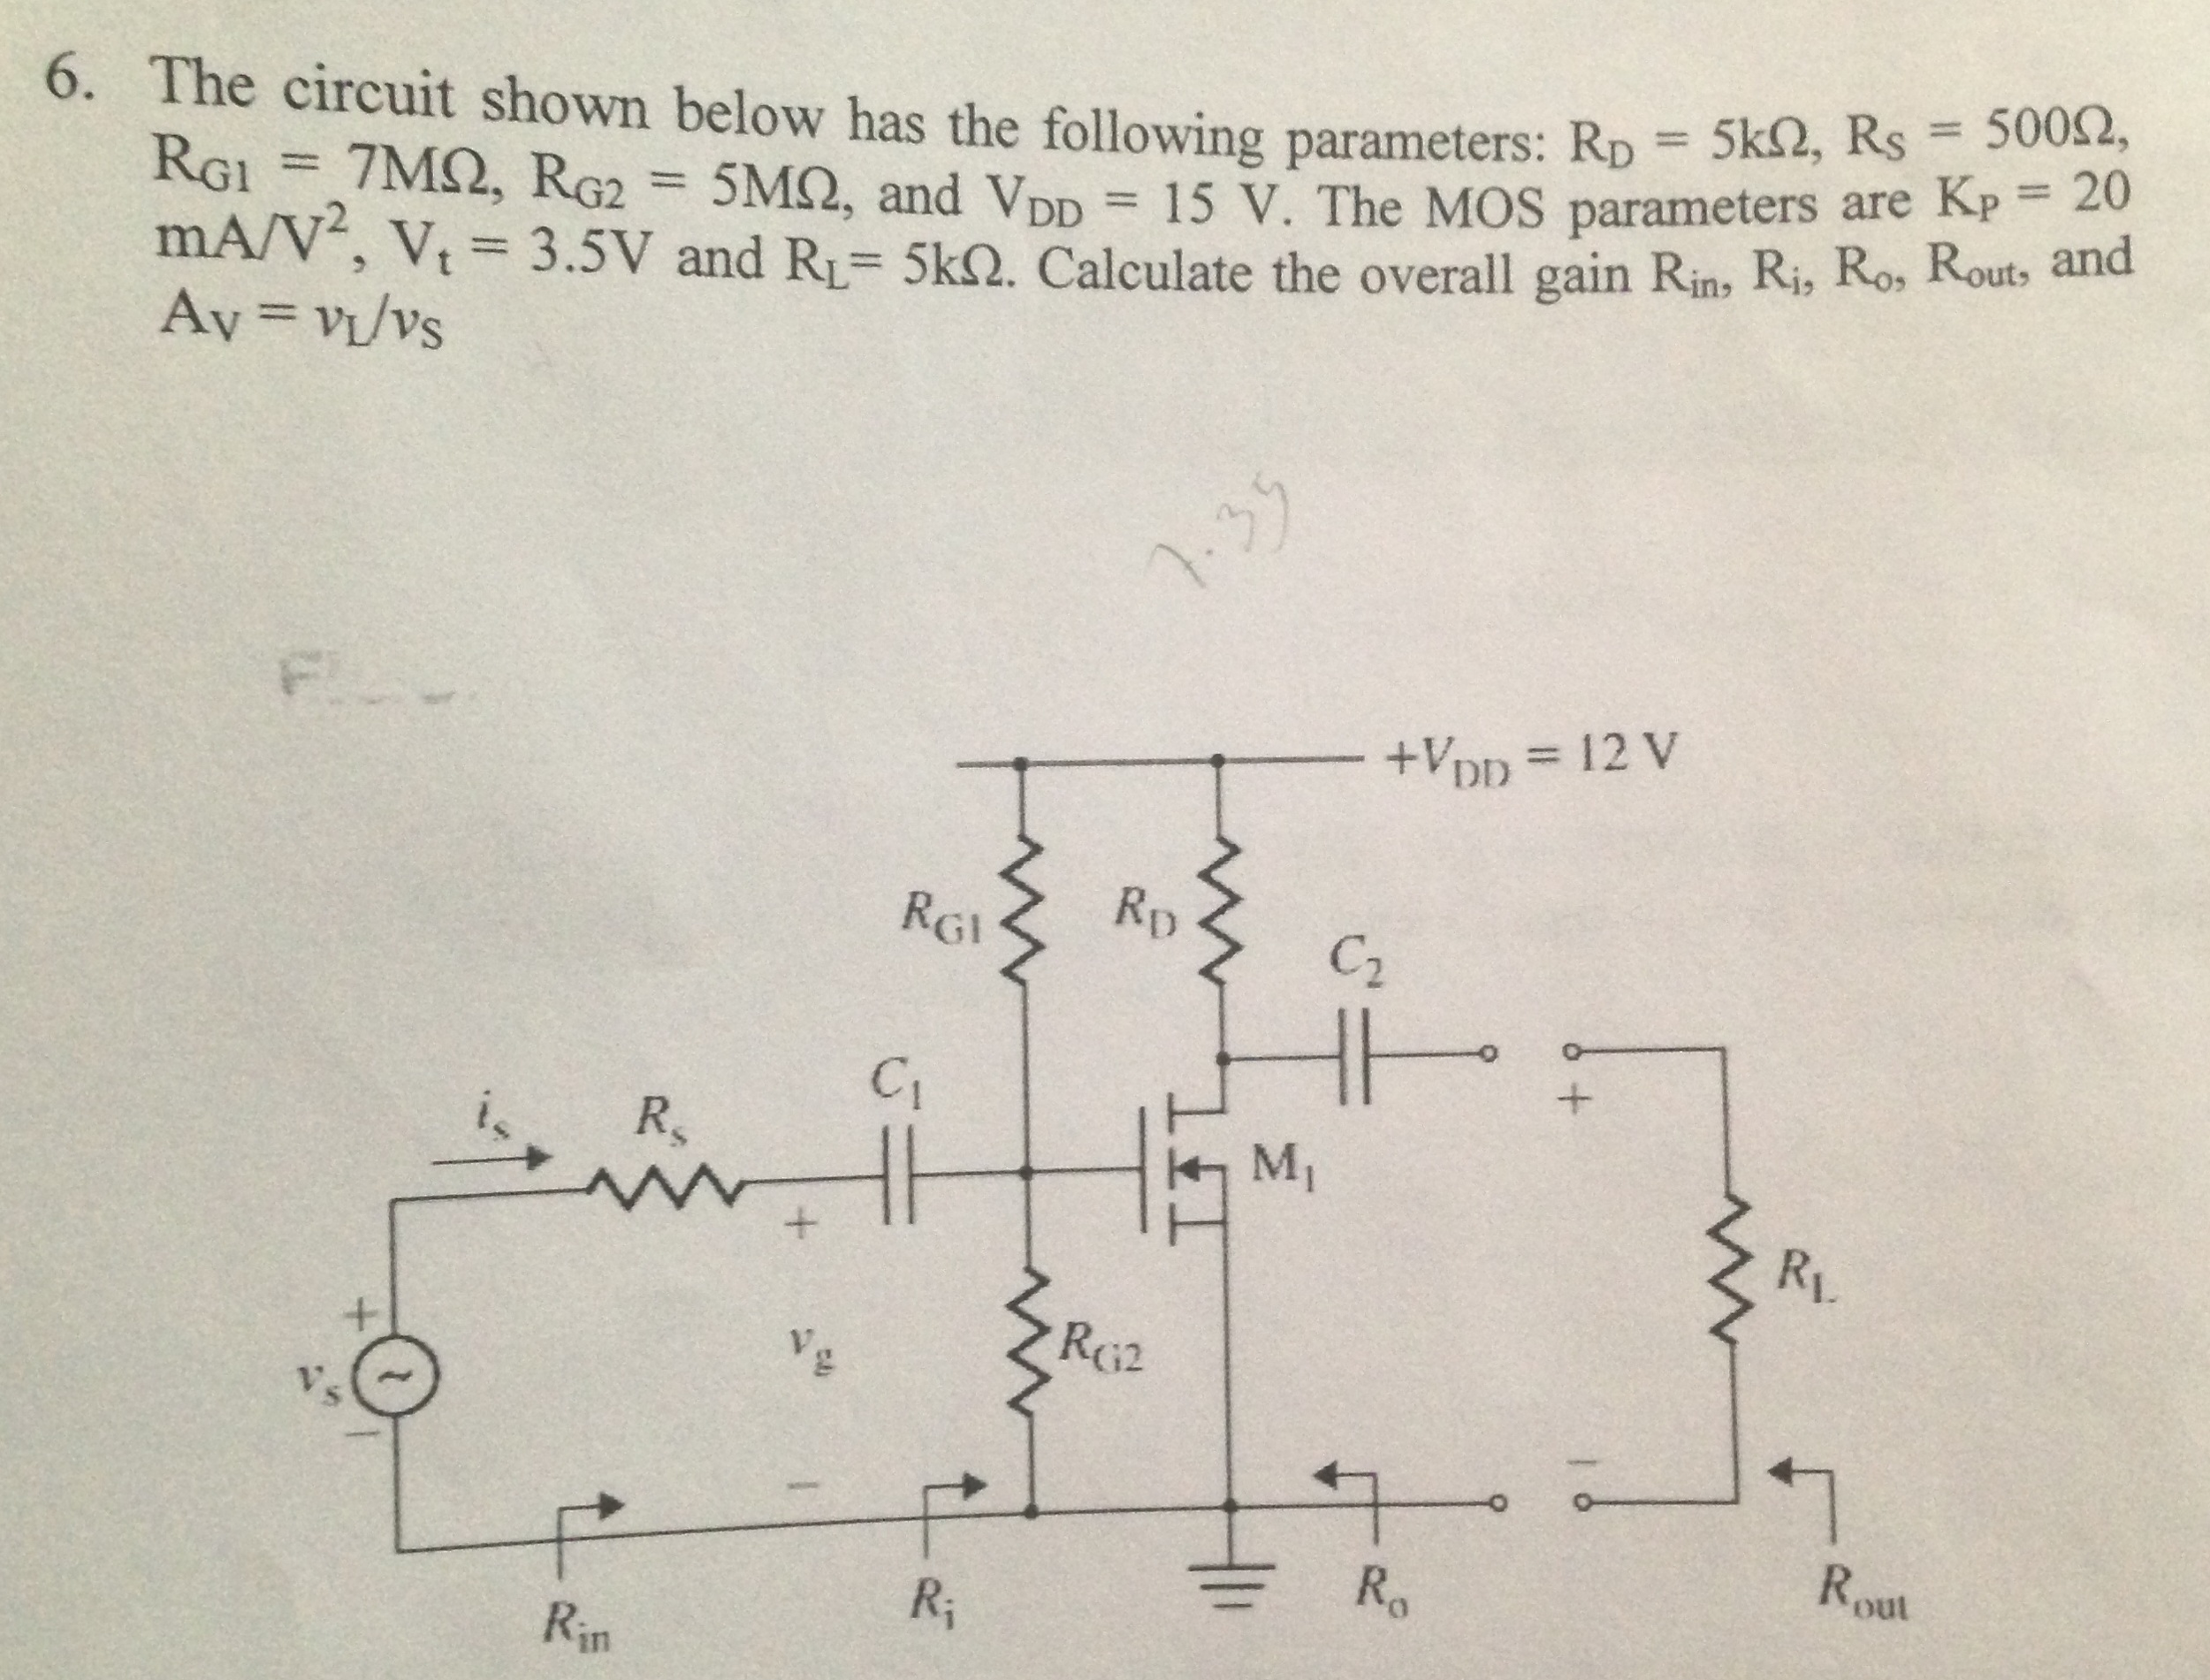 The circuit shown below has the following paramete